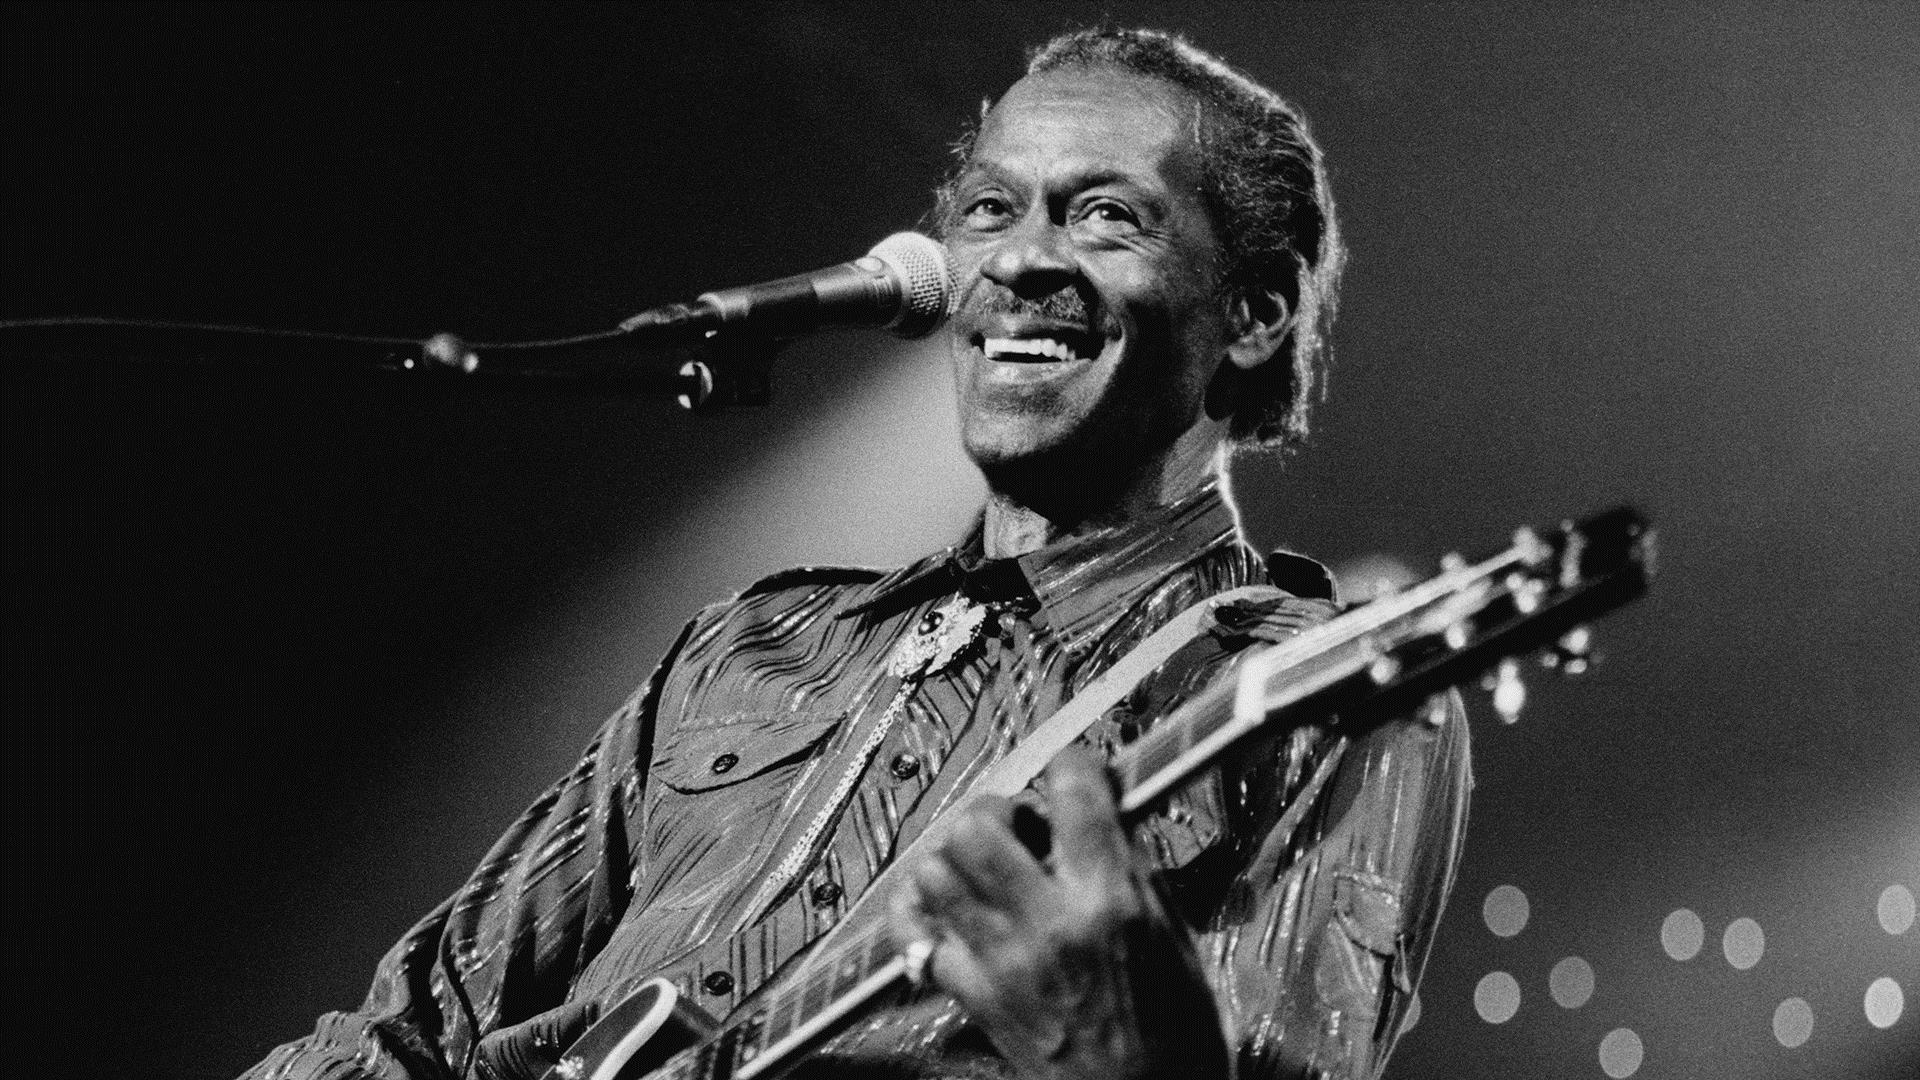 This Is A Chuck Berry Tribute The Perfect Lighting Design Piece 5 lighting design piece This Is A Chuck Berry Tribute: The Perfect Lighting Design Piece This Is A Chuck Berry Tribute The Perfect Lighting Design Piece 5